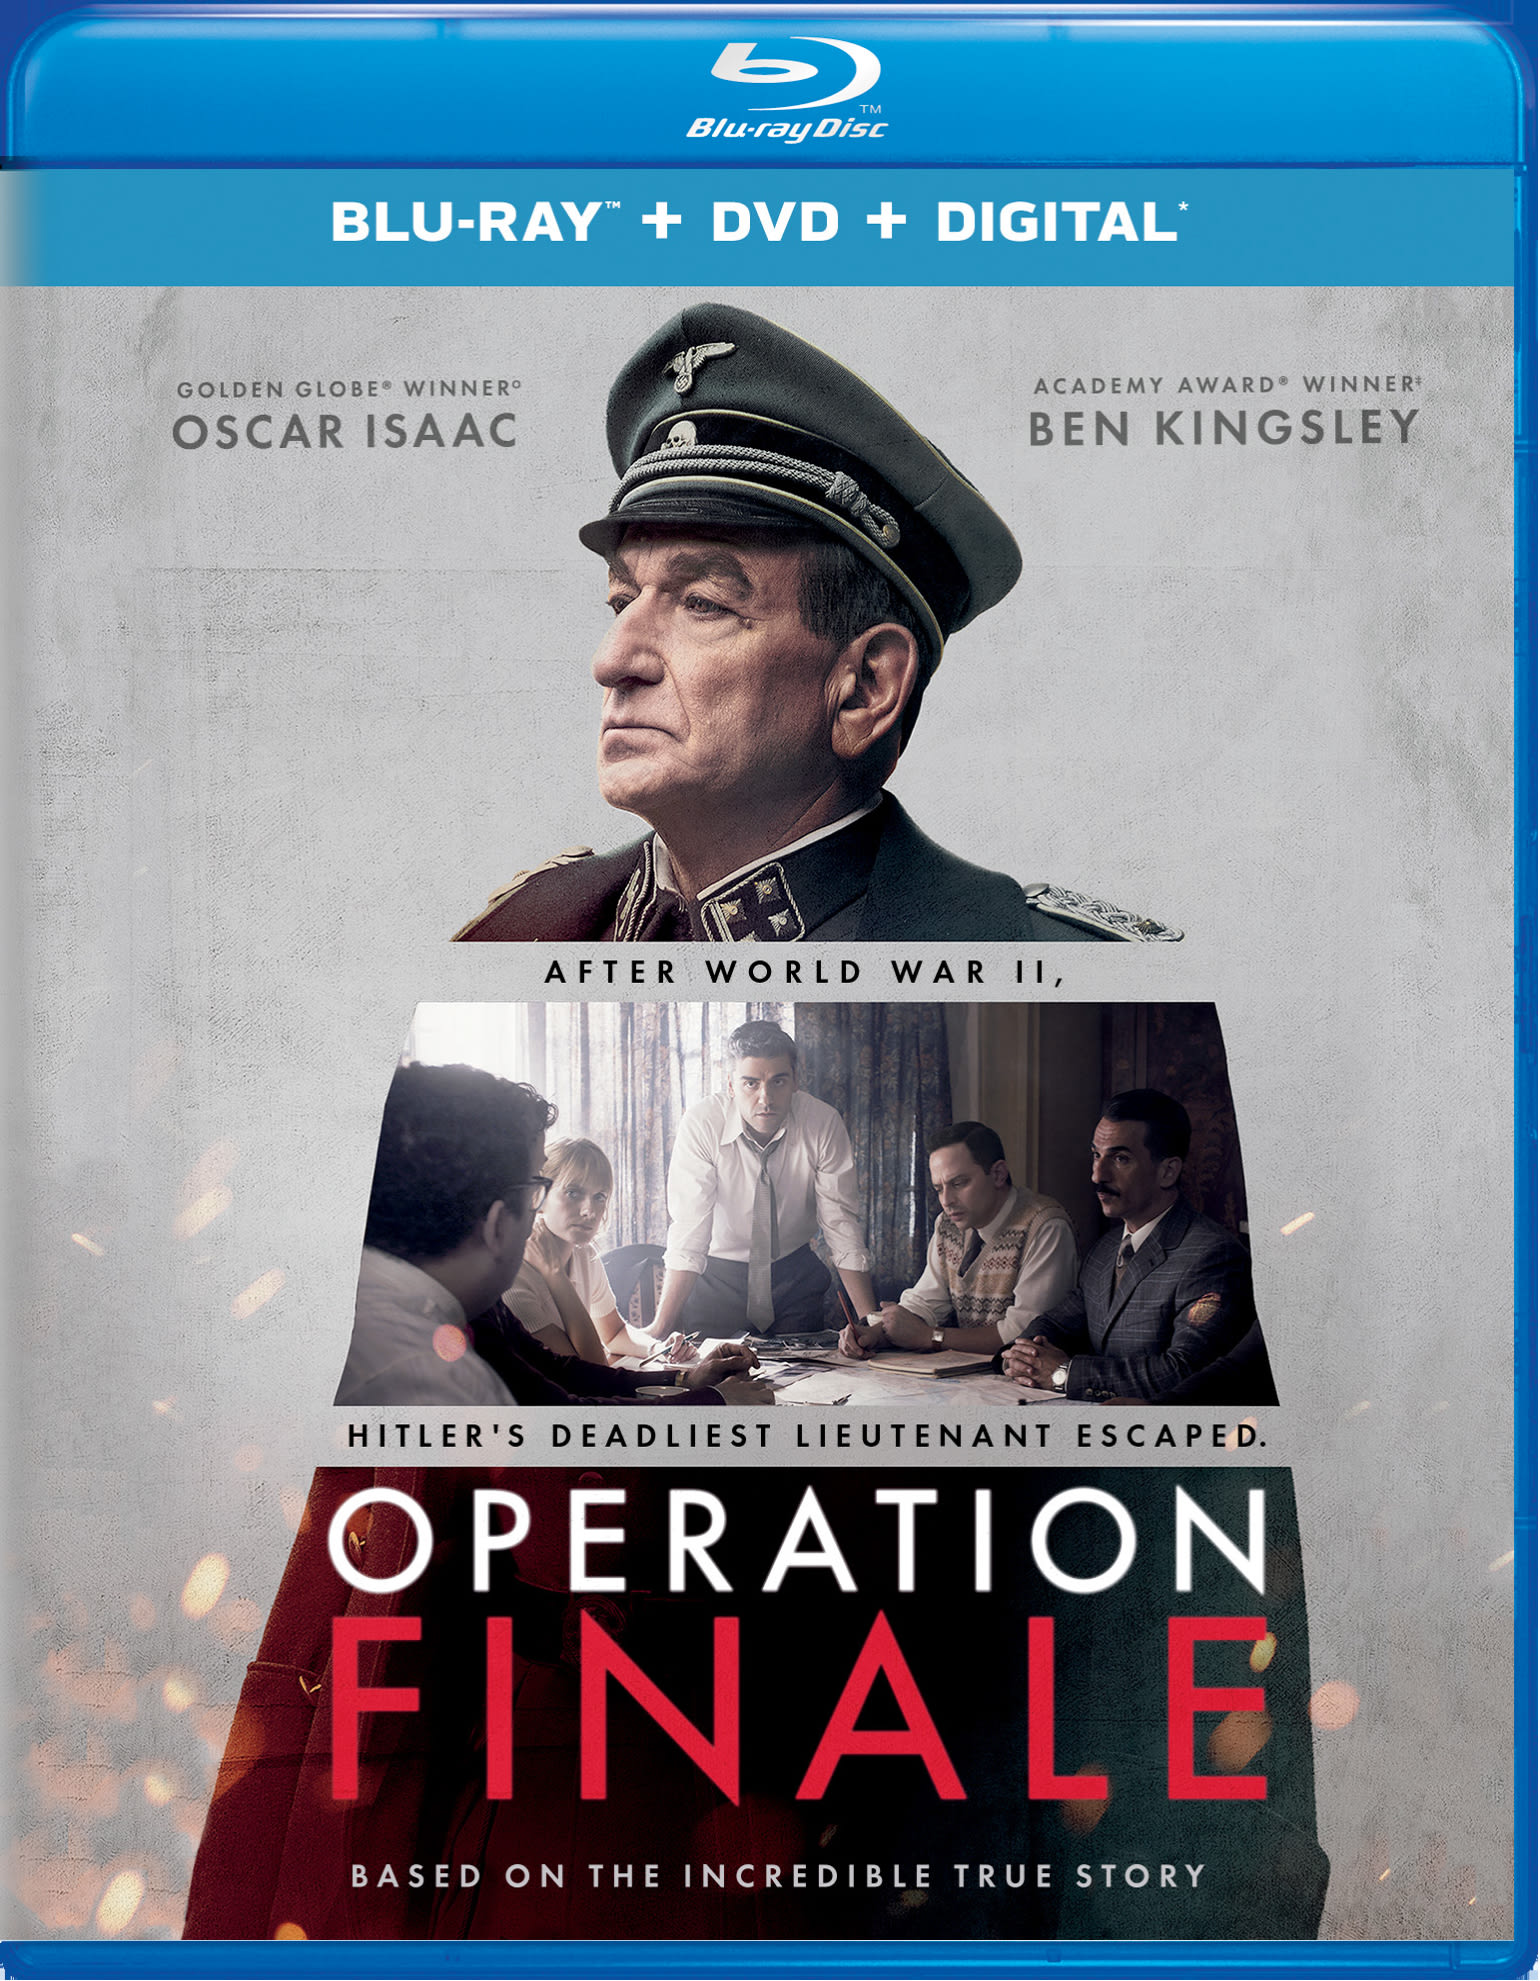 Operation Finale (DVD + Digital) [Blu-ray]